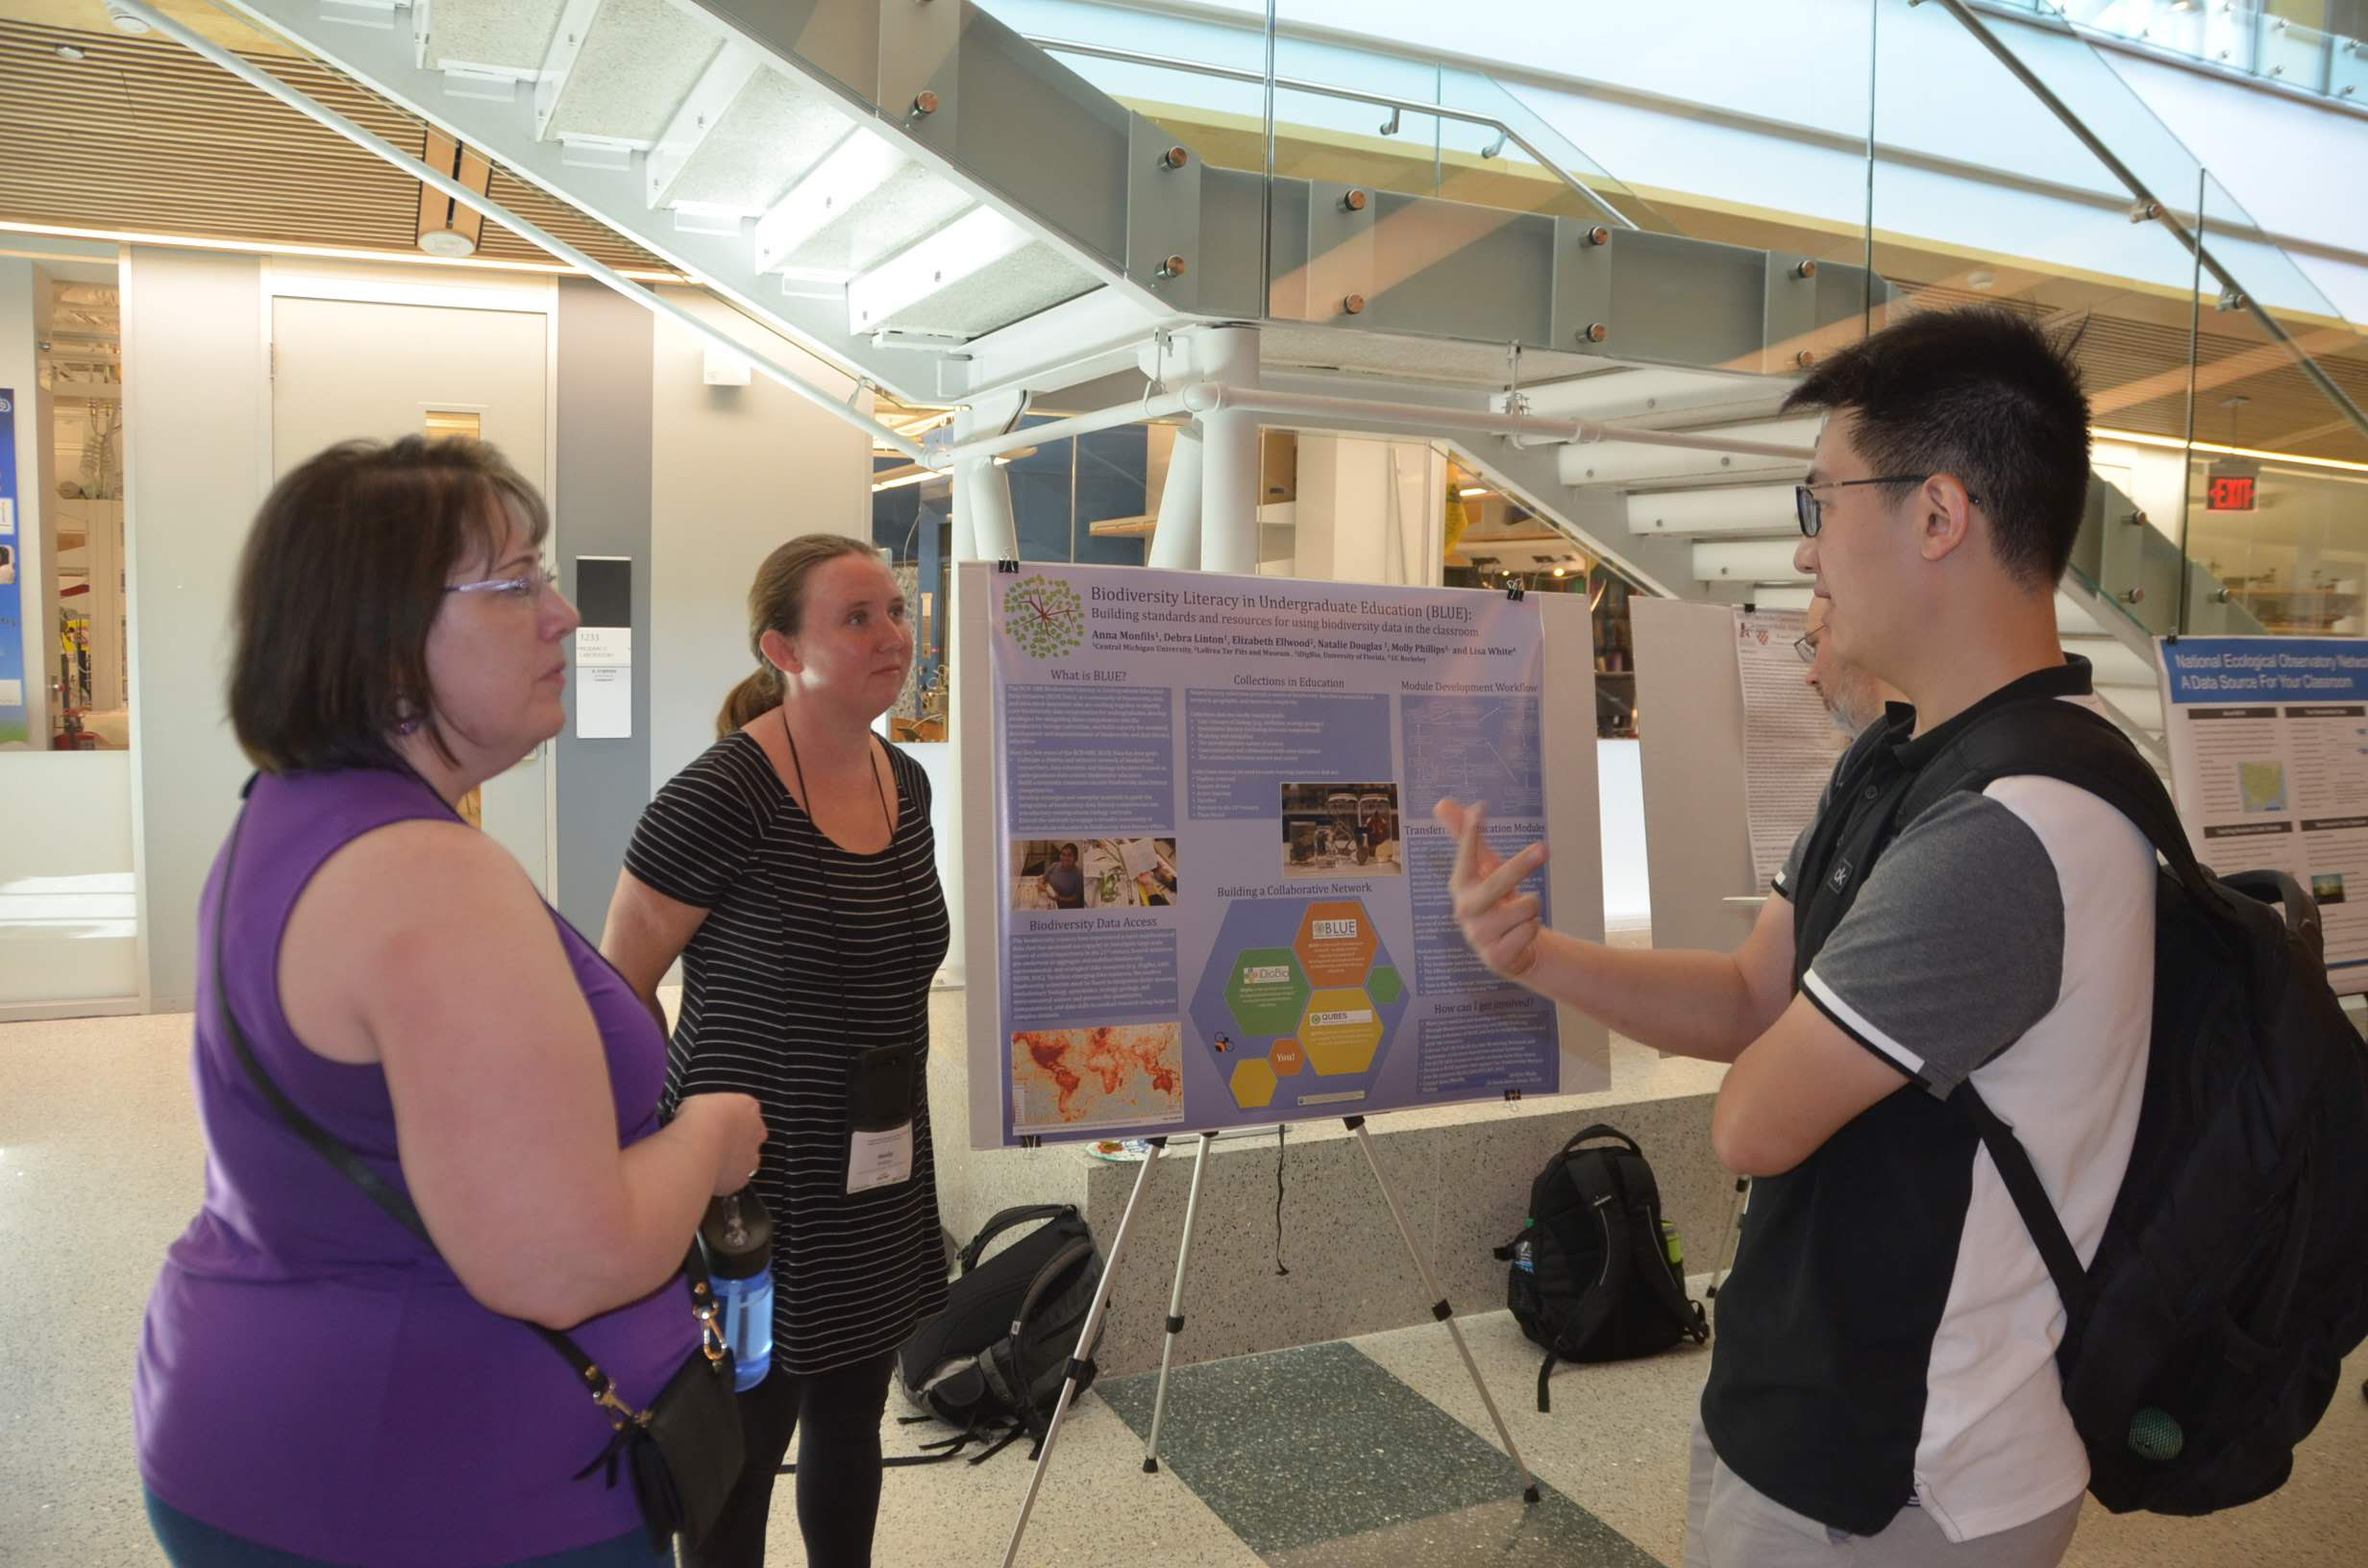 Debra Linton and Molly Phillips speaking with a student at the poster session